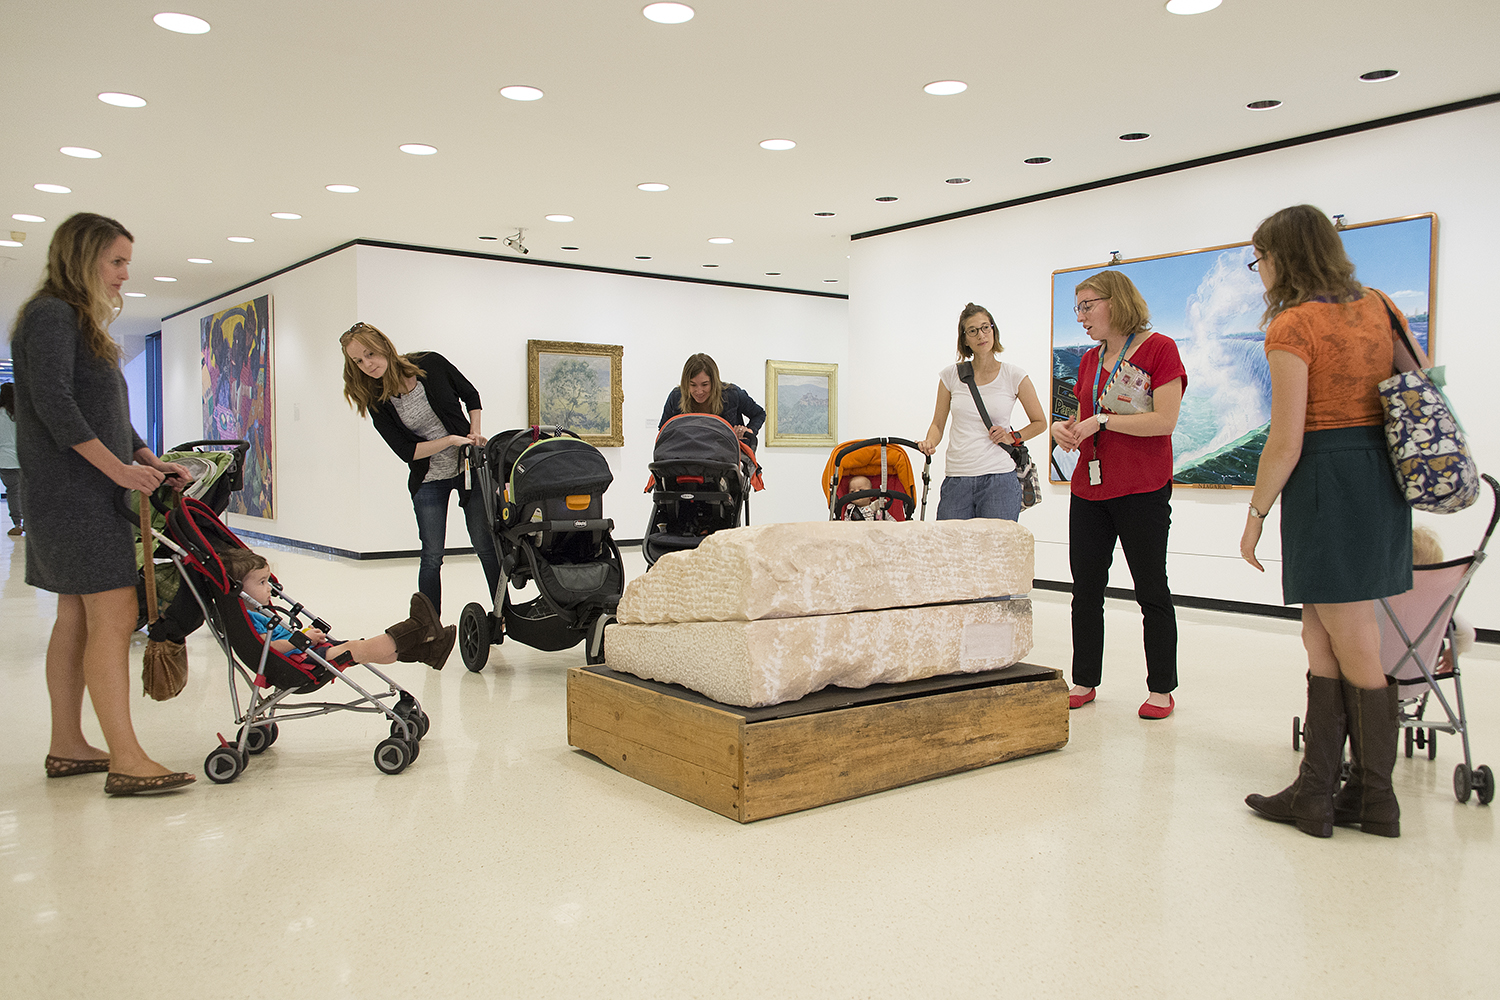 Women push strollers through the Albright-Knox Art Gallery